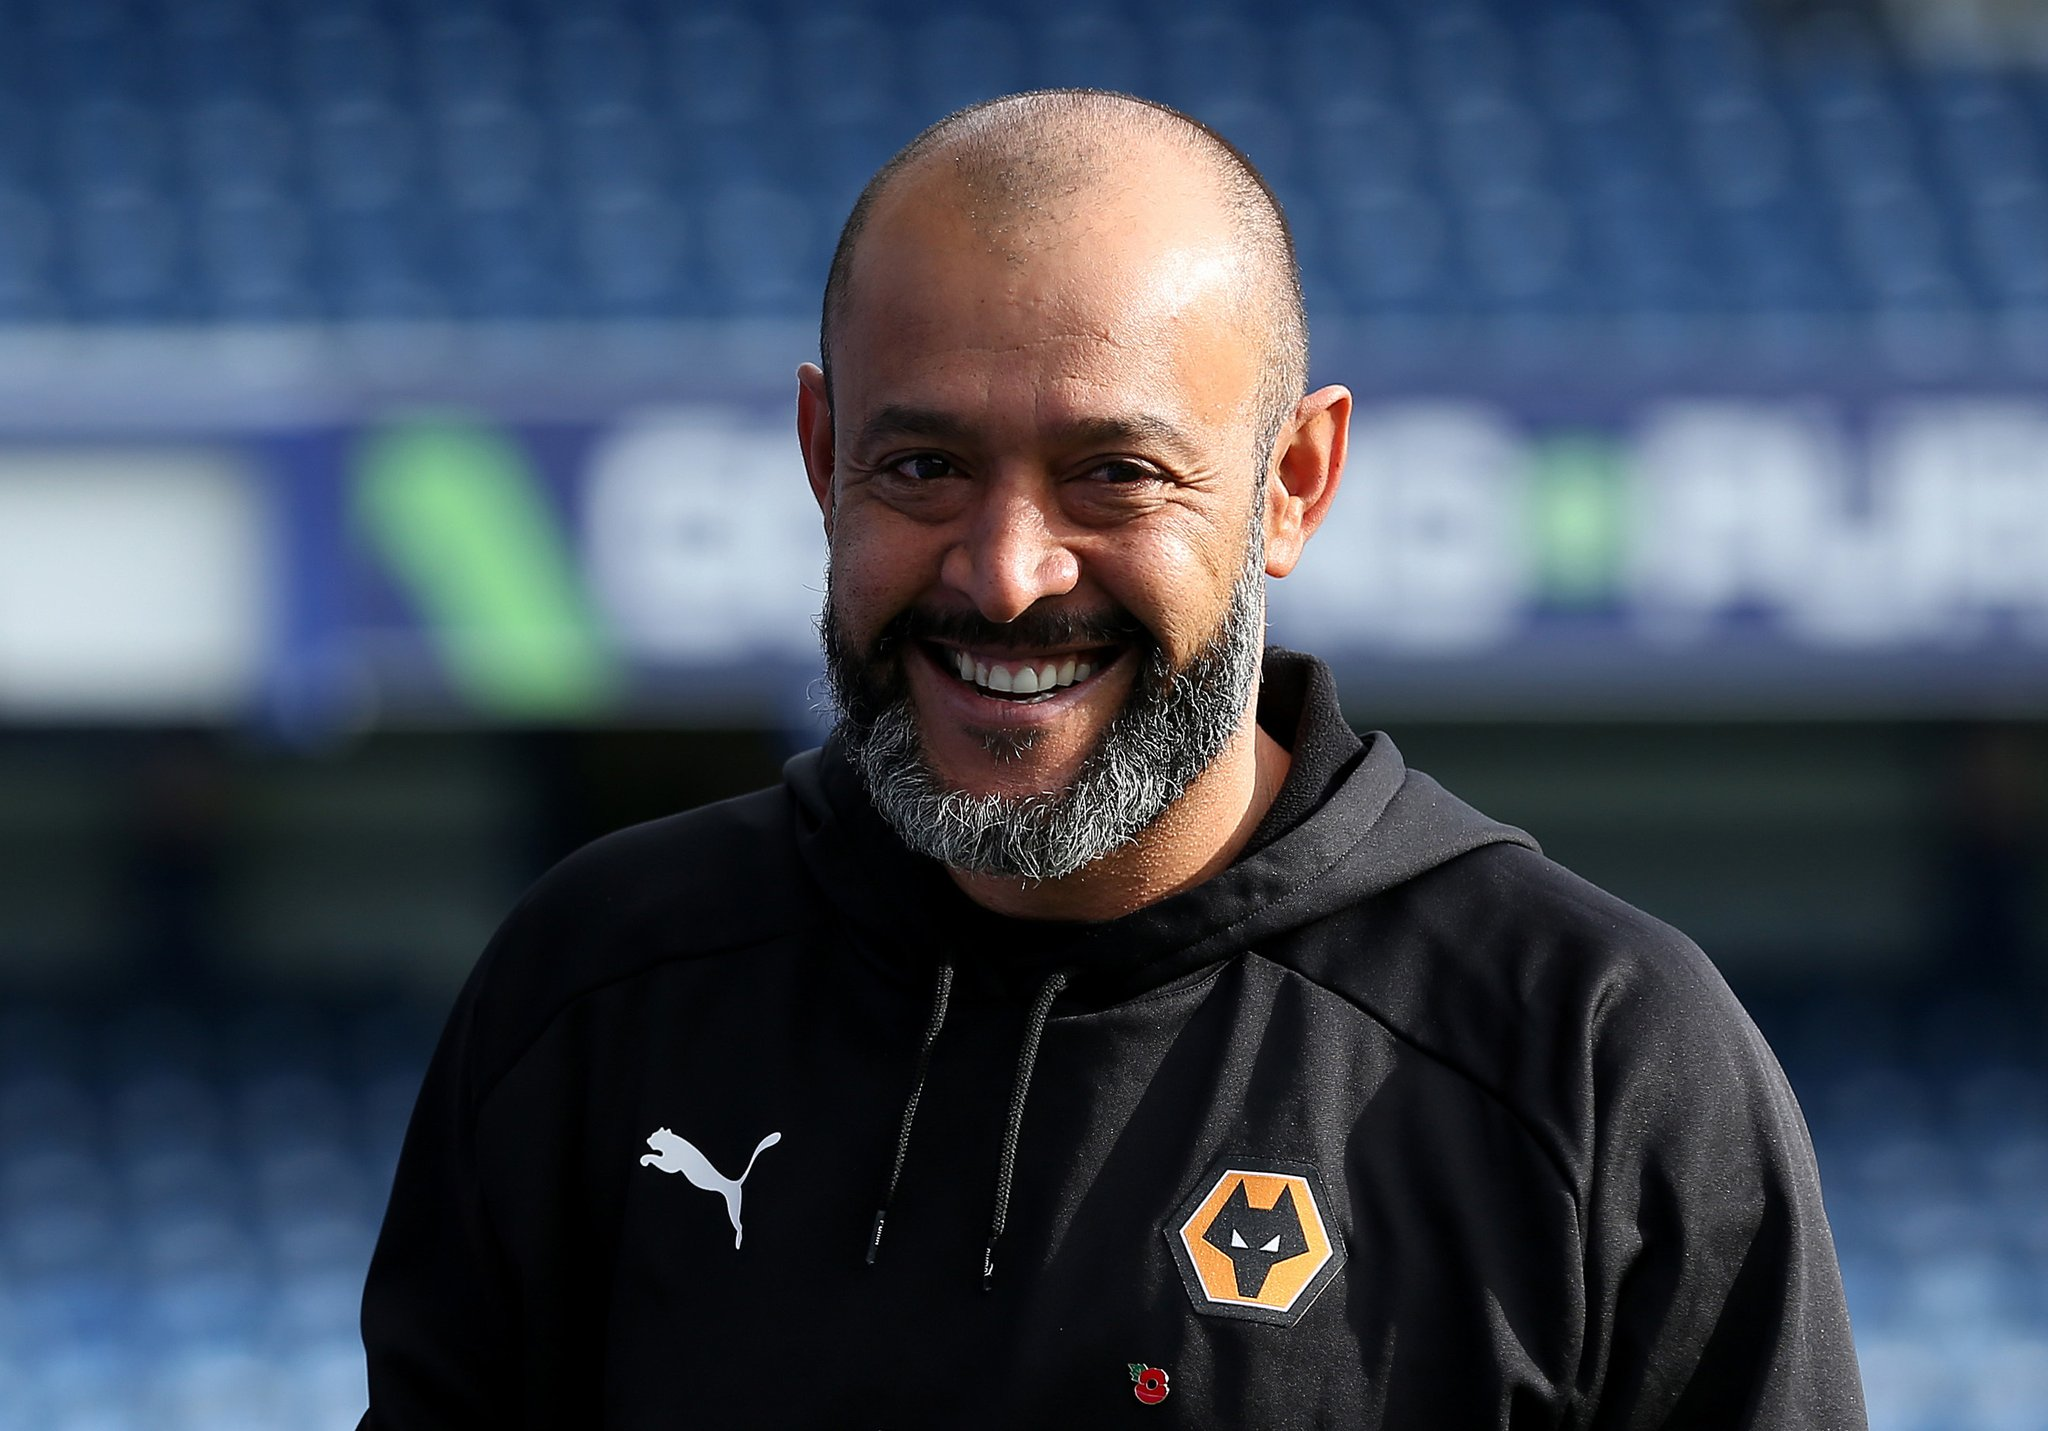 Happy birthday to Nuno Espirito Santo! 🎈  Stats for #WWFC: ✅ 73 Wins 🤝 32 Draws ❌ 33 Losses   Where is he ranked for best current Premier League manager? 🤔 https://t.co/iCUbURsNoQ